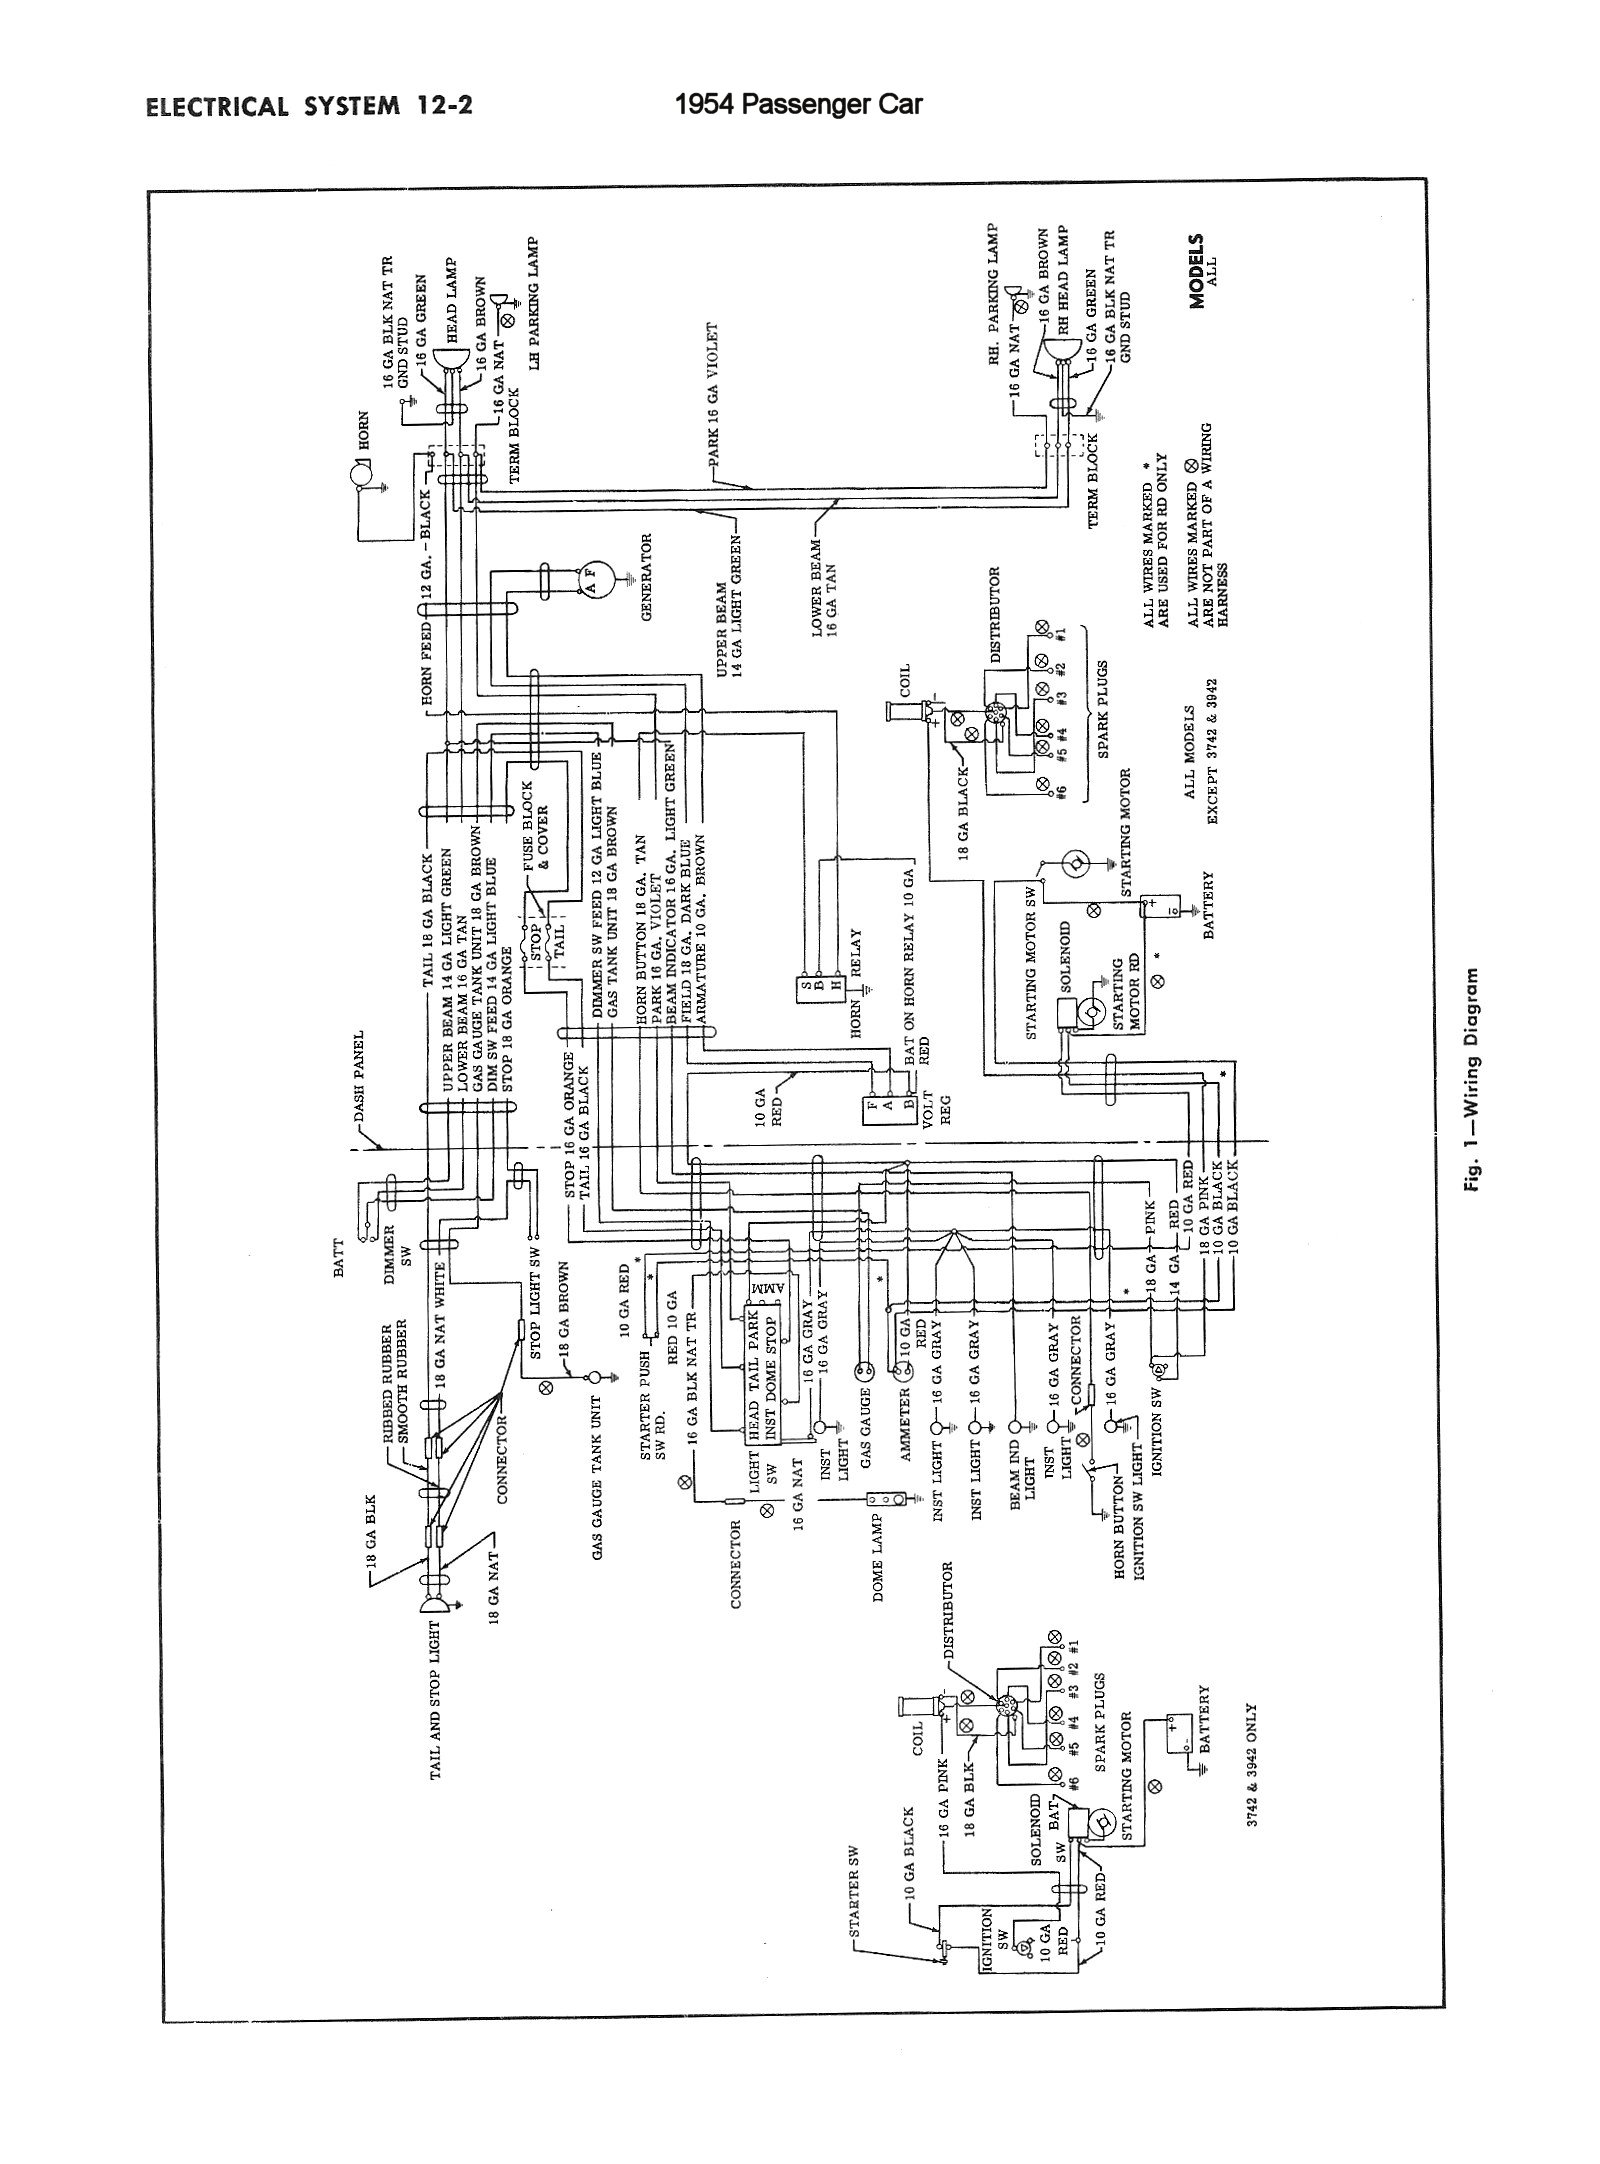 54ctsm1202 chevy wiring diagrams 66 Chevy Headlight Switch Wiring Diagram at bayanpartner.co